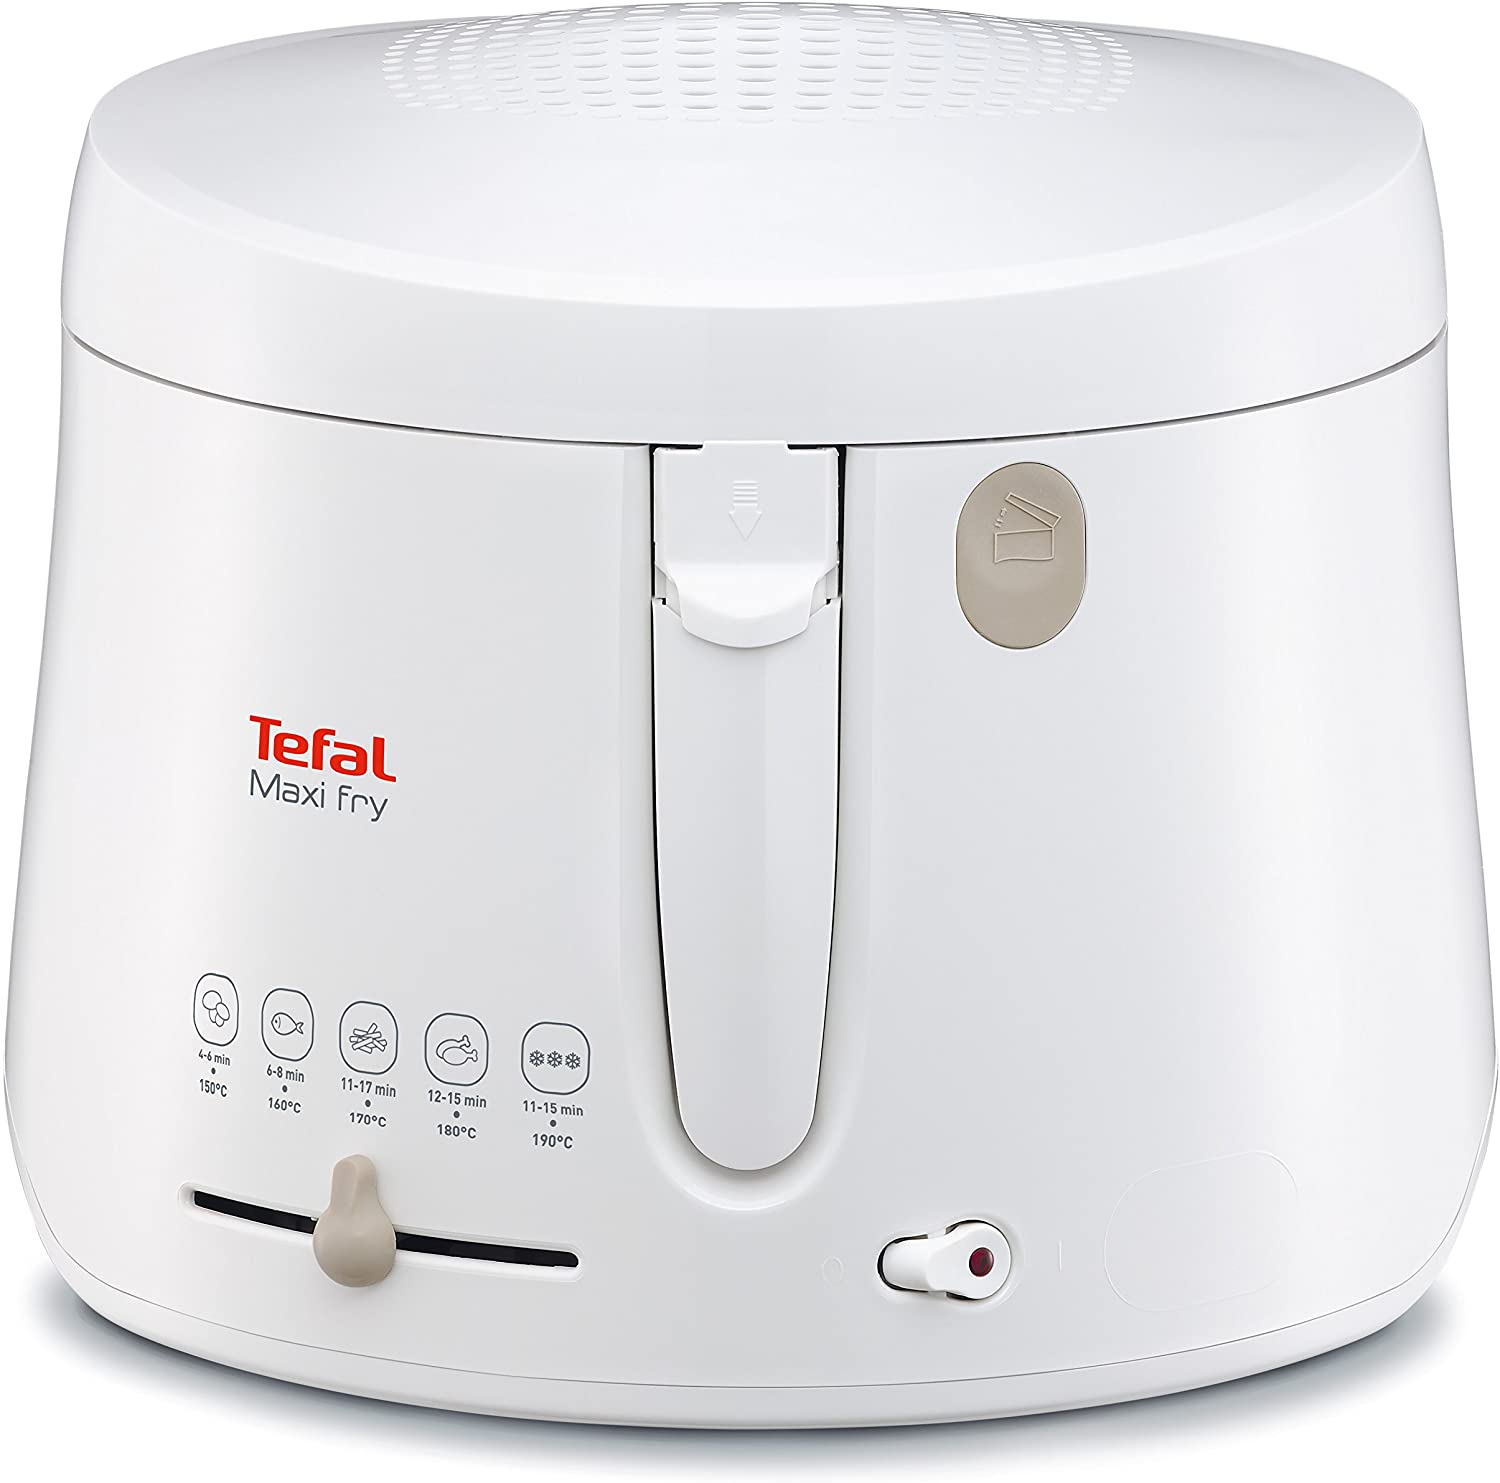 Electric Fryer Tefal FF 1001 MAXI-FRY